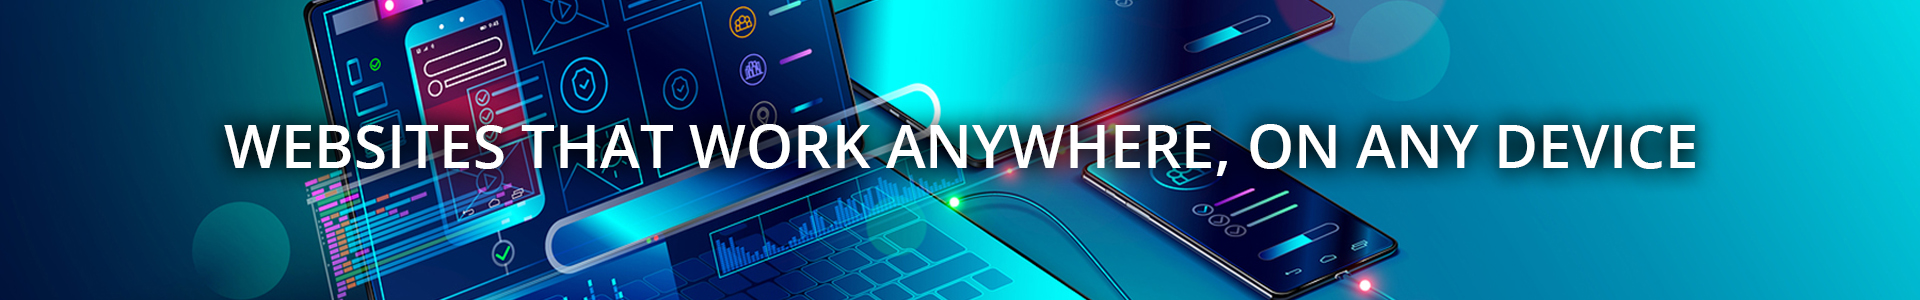 Websites That Work Anywhere, On Any Device